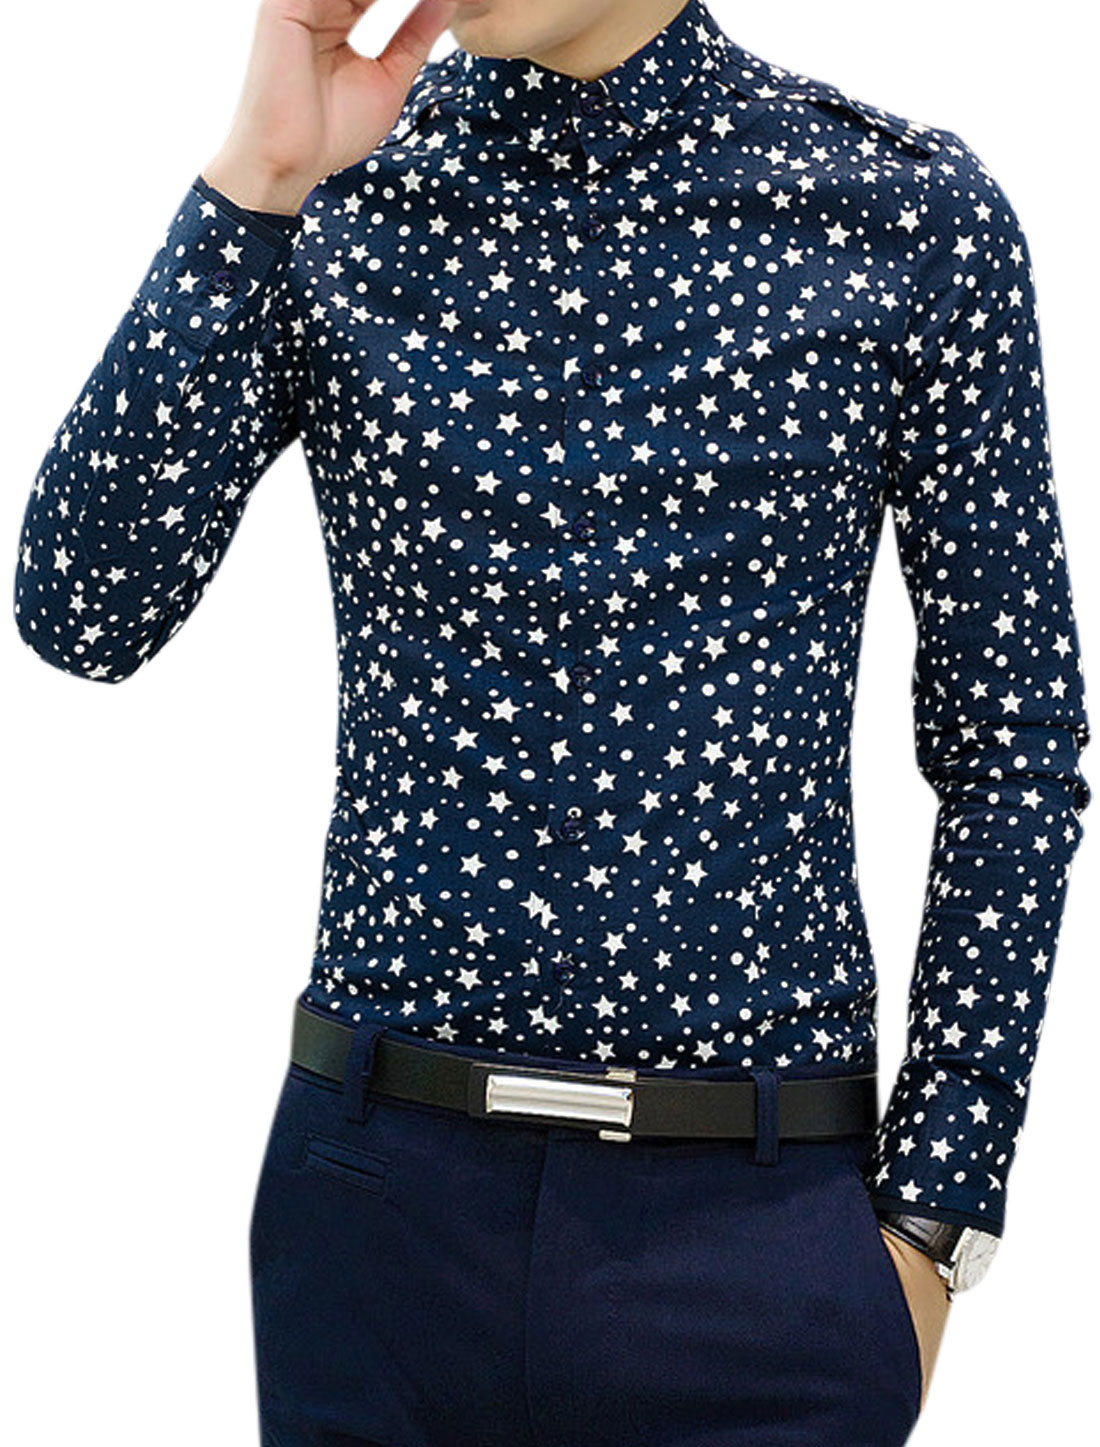 Man Long Sleeves Point Collar Stars Pattern Navy Blue Shirt S